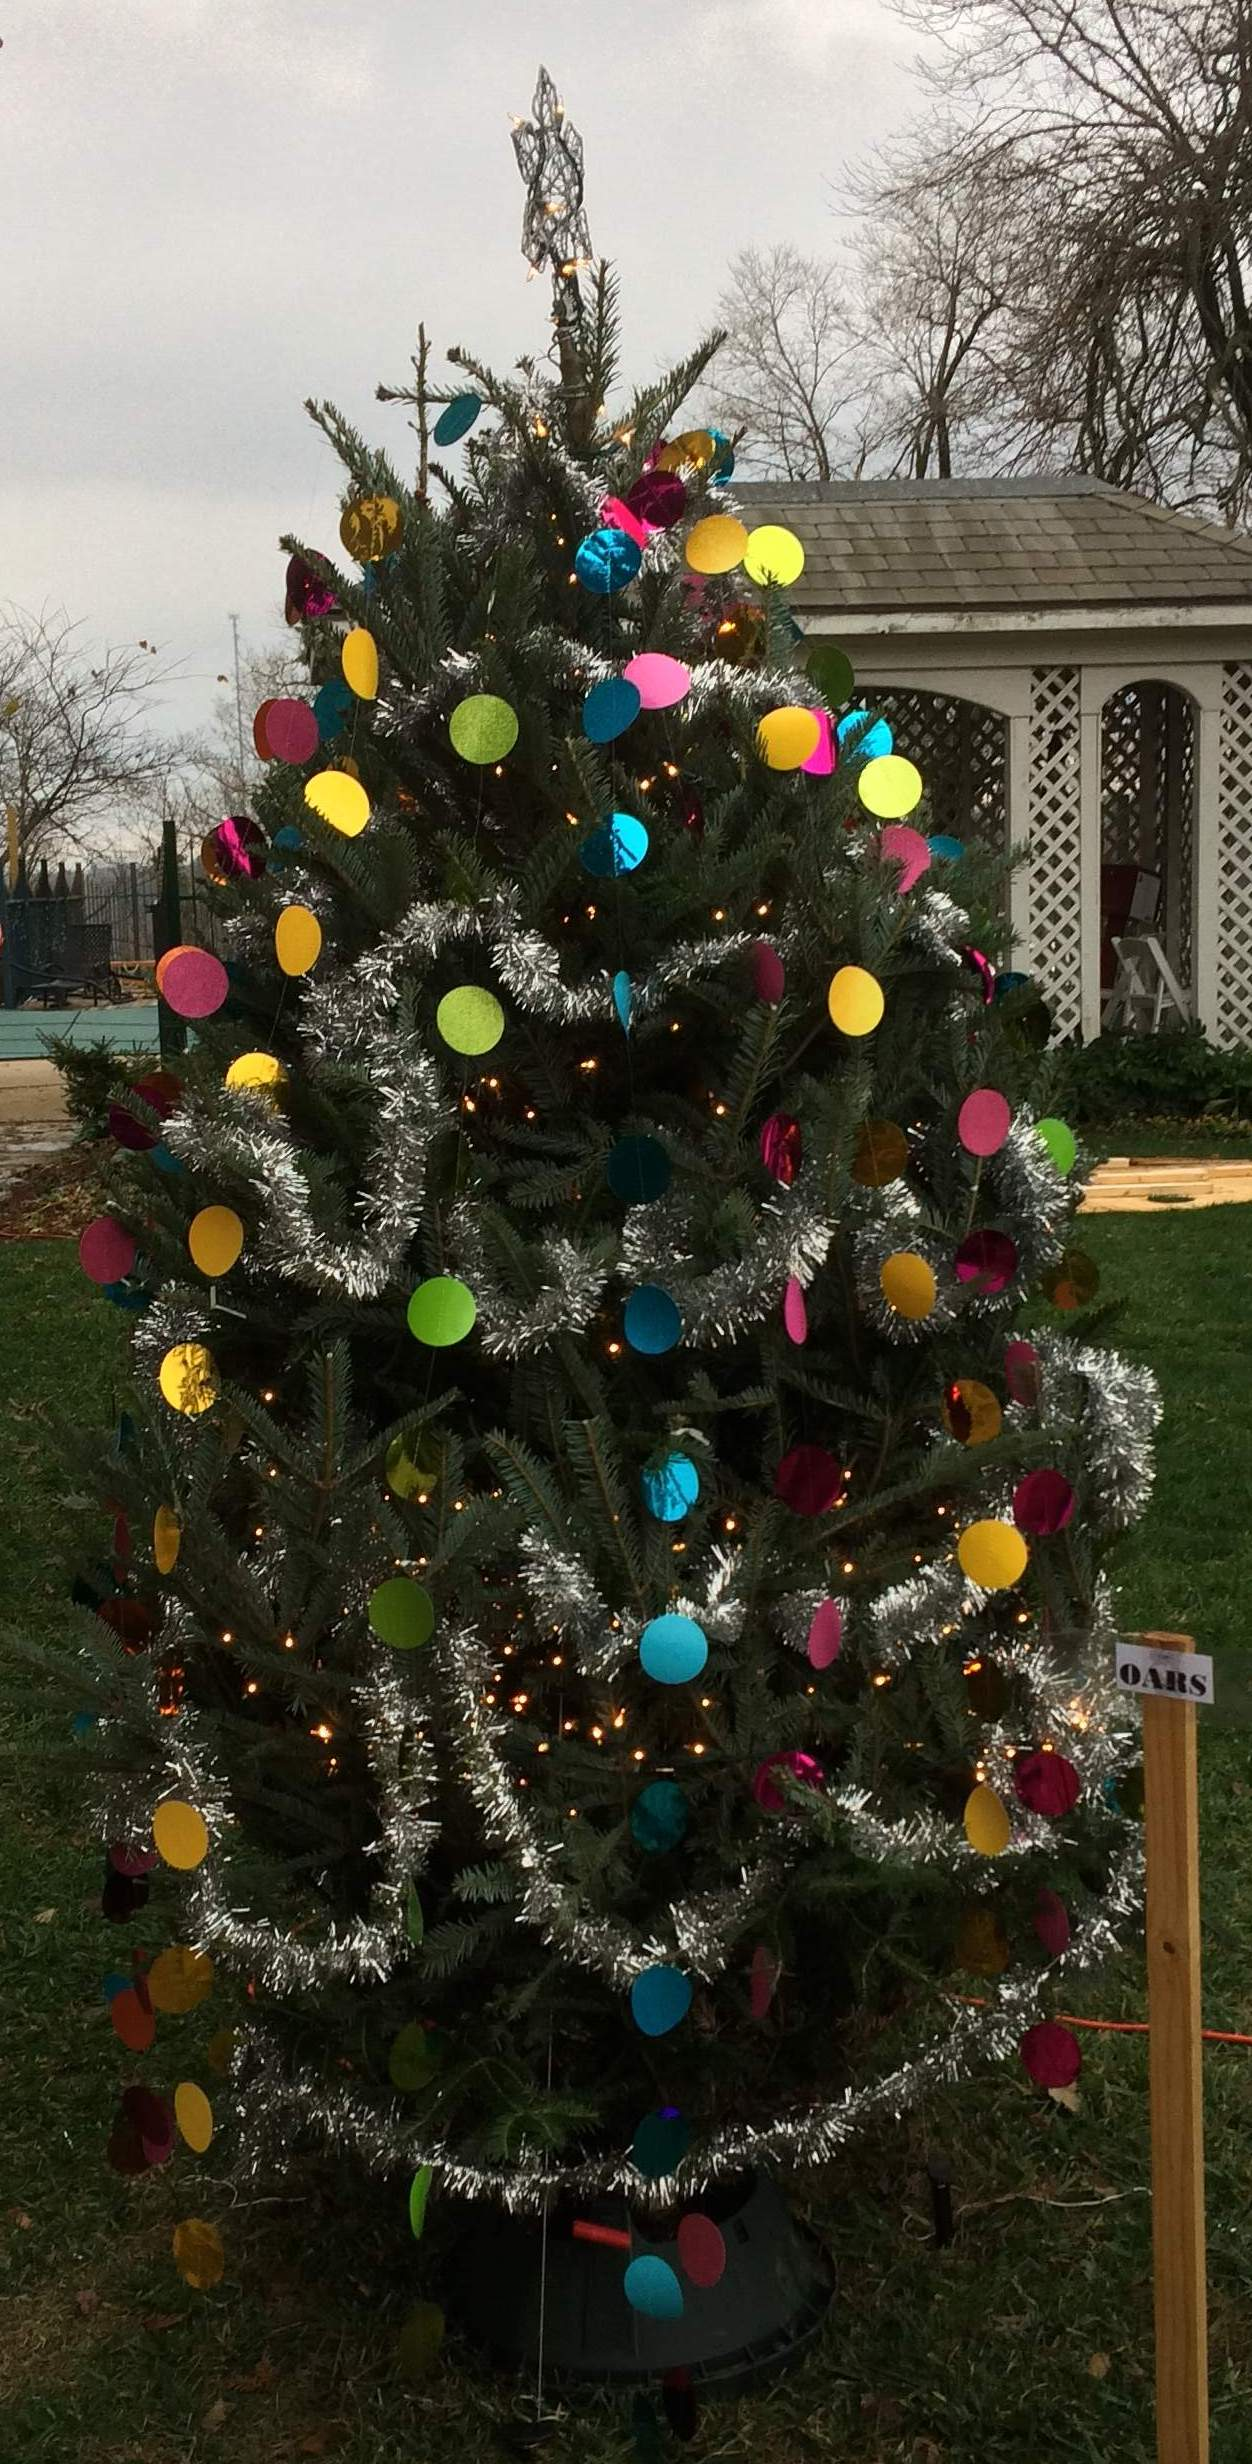 OARS Christmas Tree 2017